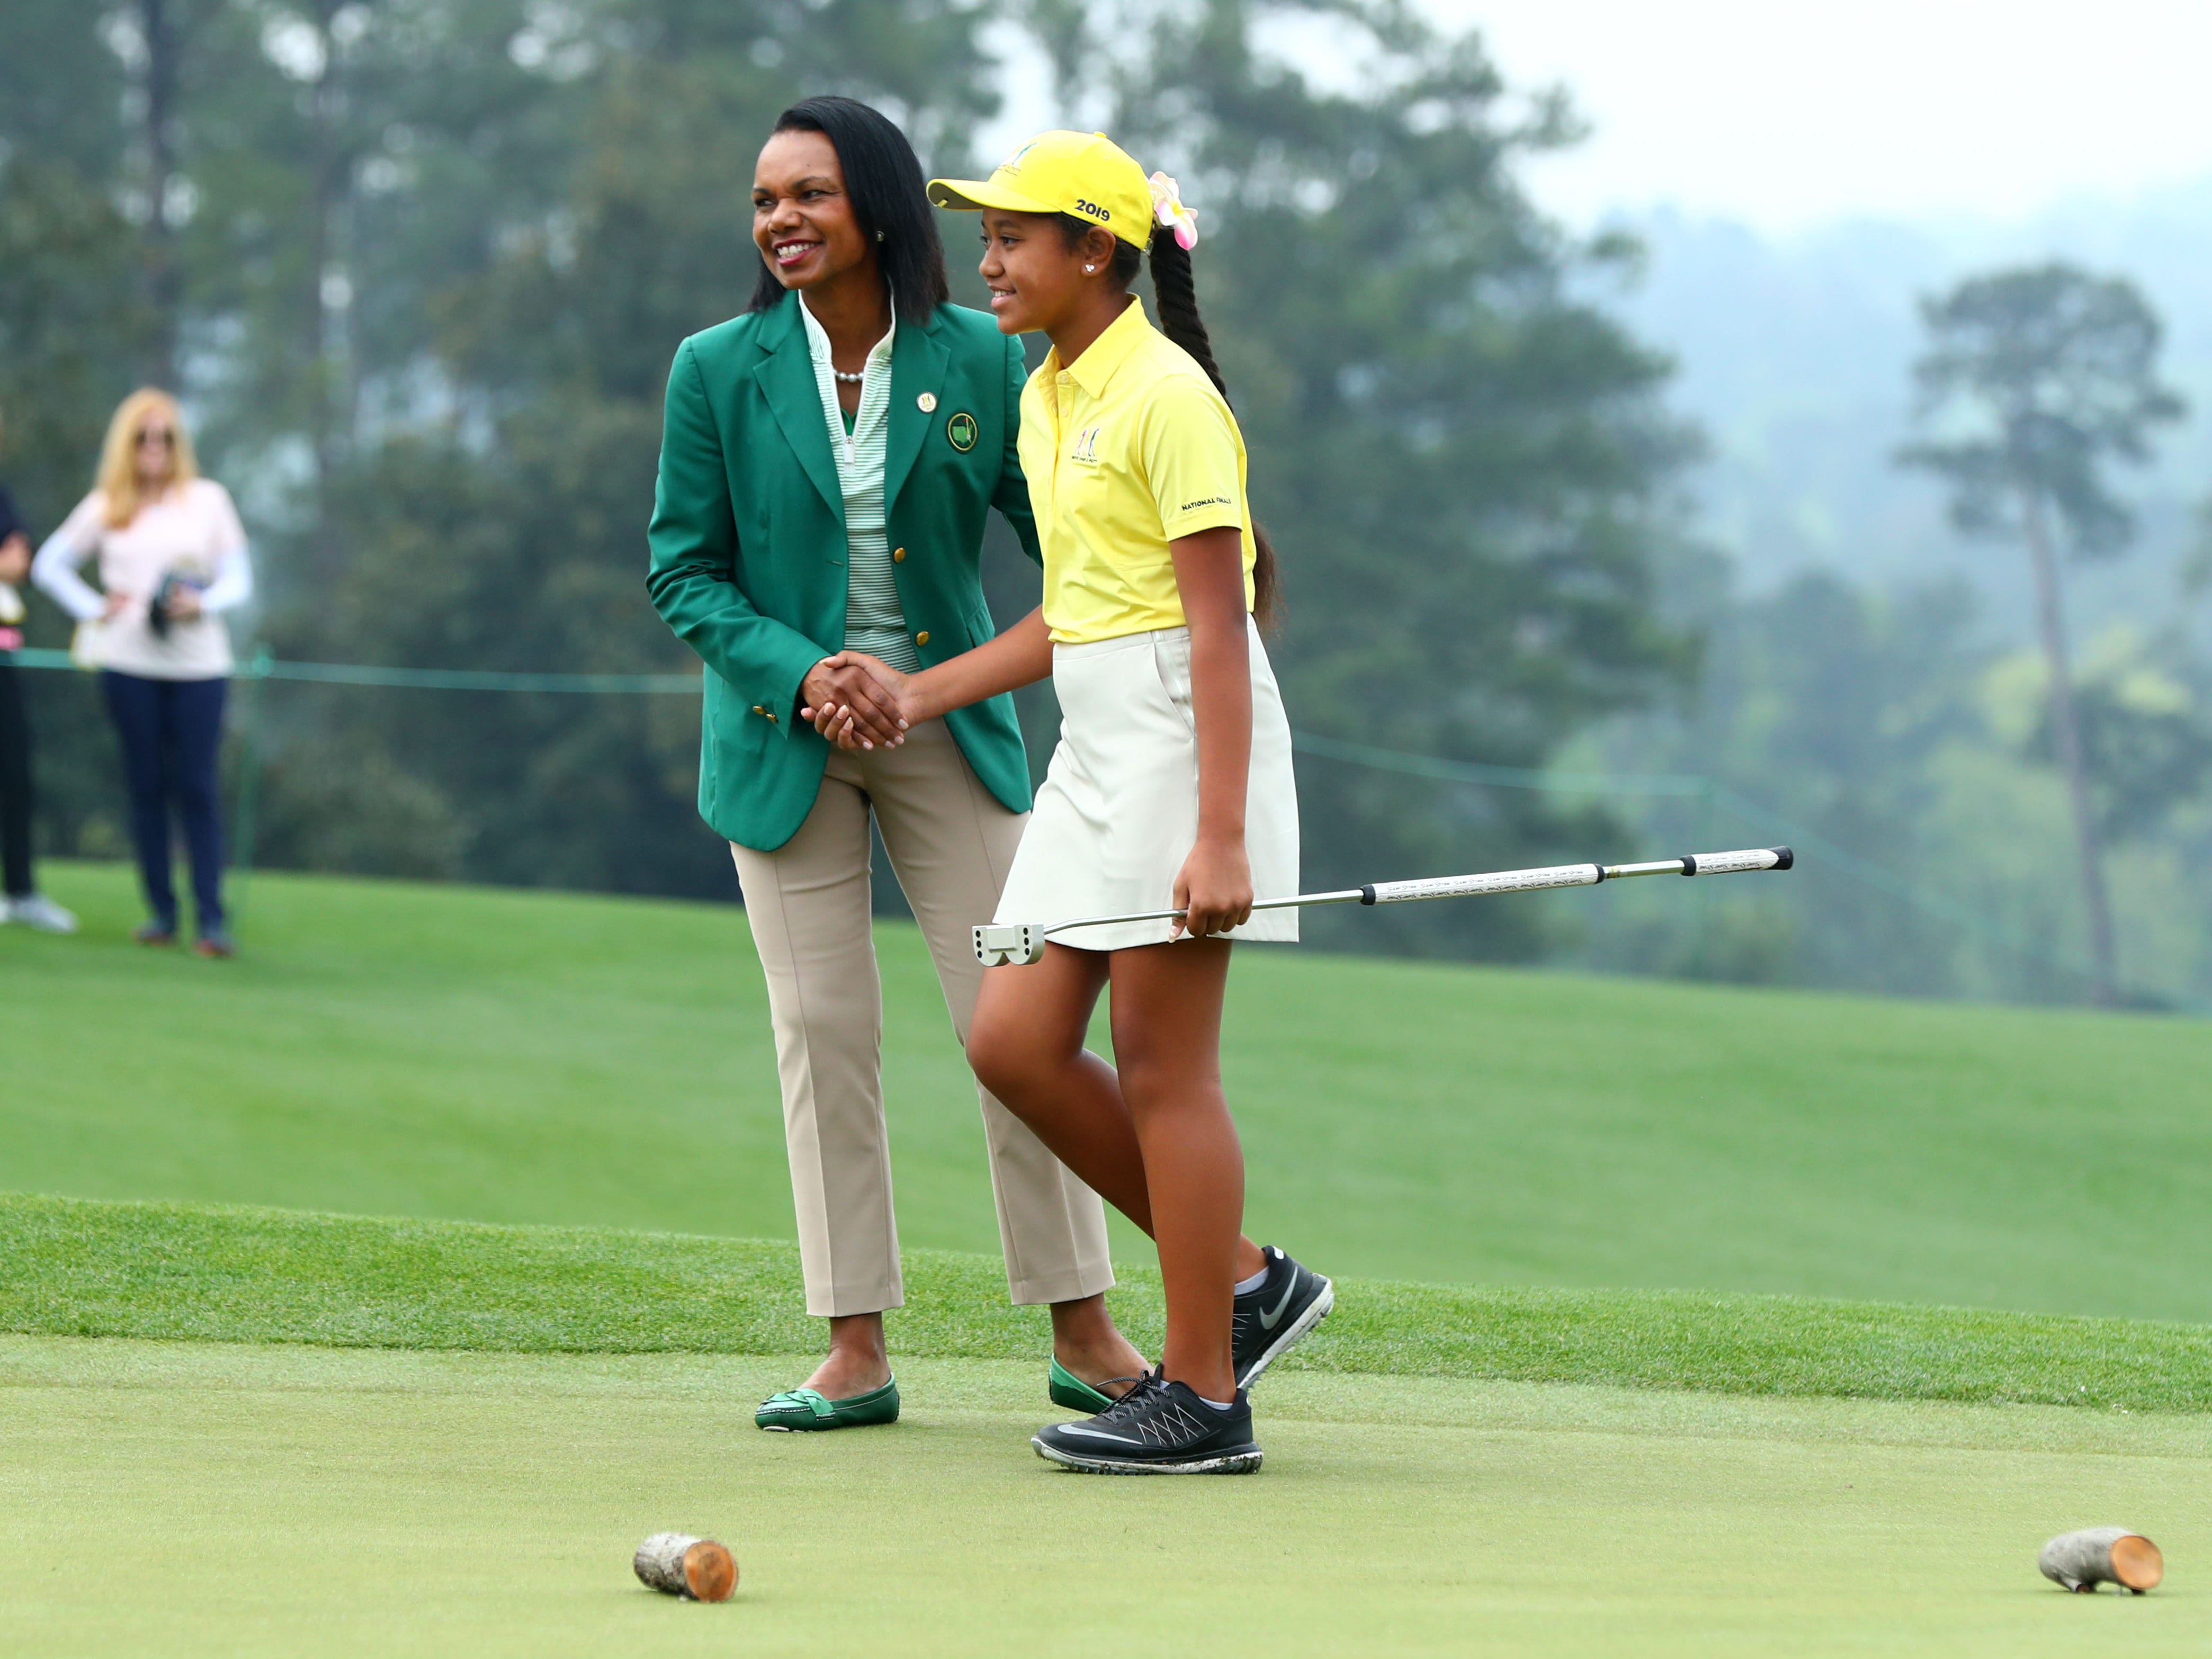 Apr 7, 2019: Augusta National member Condoleezza Rice congratulates Alexis Vakasiuola of San Tan Valley, Ariz. in the girls 7-9 age group during the finals of the Drive, Chip and Putt competition at Augusta National Golf Club.